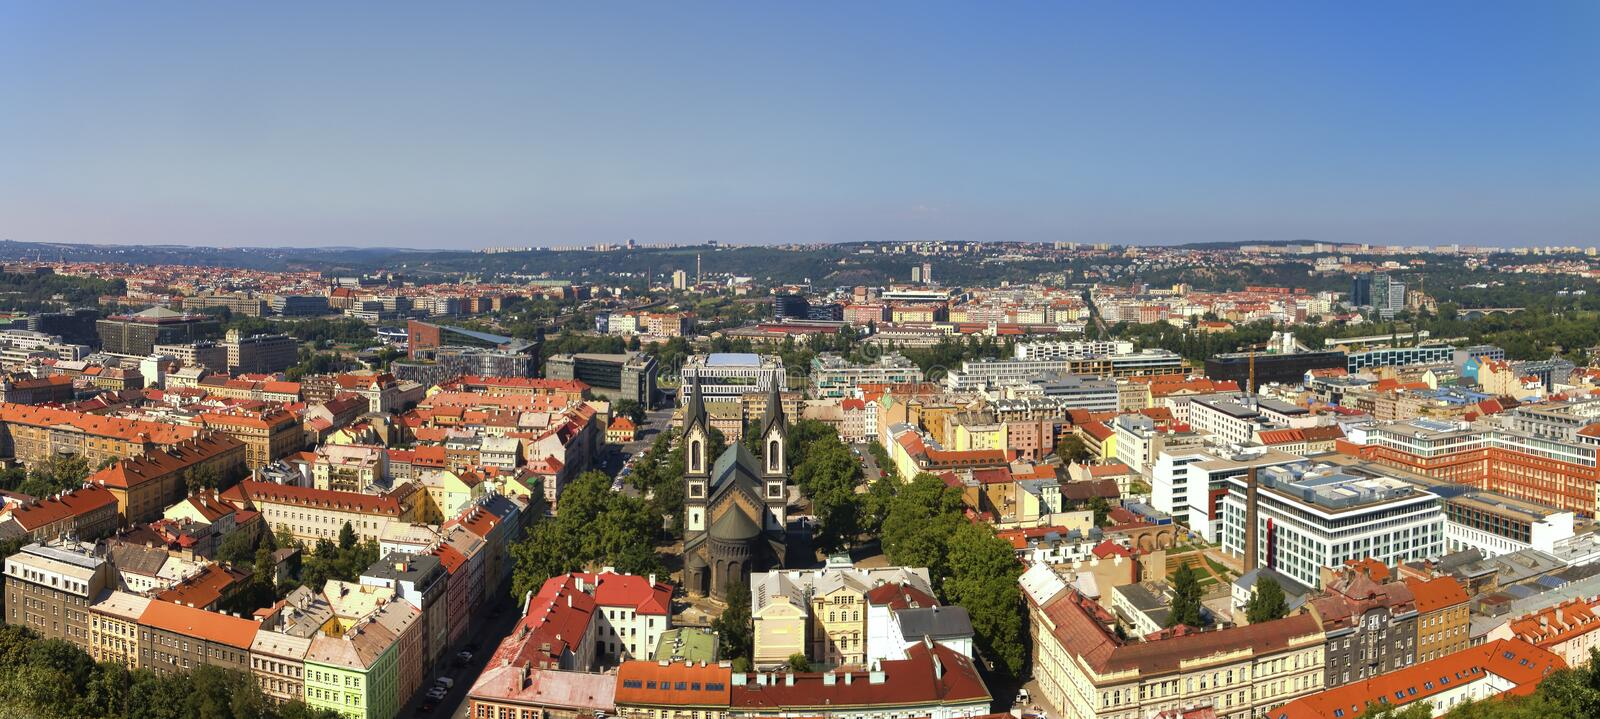 Panorama view from the top of the Vitkov Memorial on the Prague landscape on a sunny day stock photo